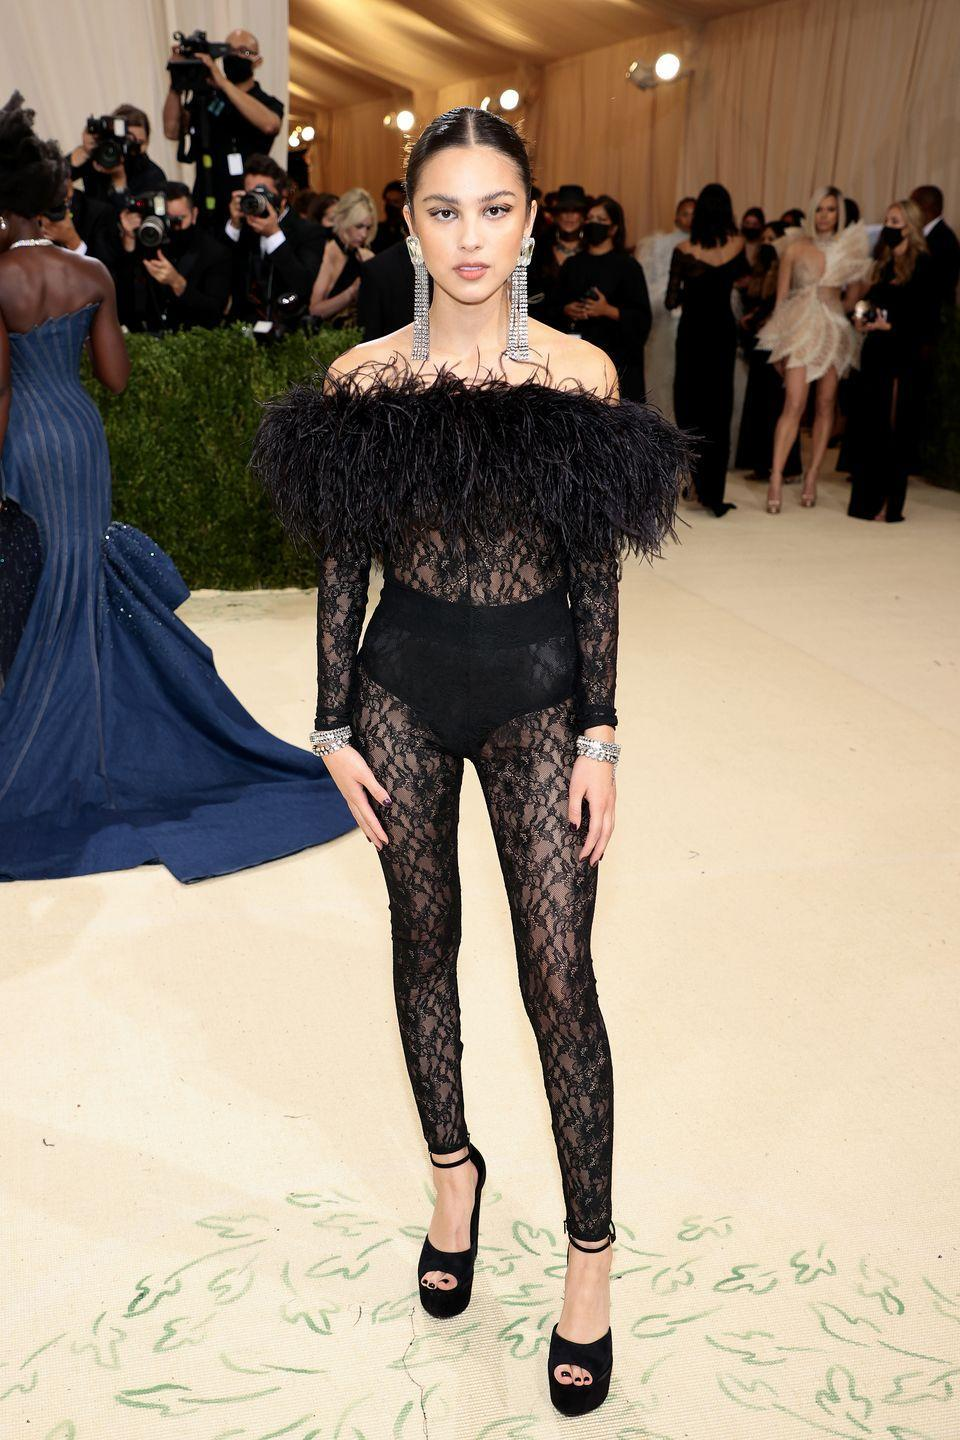 """<p>The """"Brutal"""" singer stepped out in a black lace catsuit that seemed a little more appropriate for the VMAs, but still managed to deliver that high-fashion feeling the Met Gala asks for. Besides, if there was one major trend of the night, it was definitely see-through and tight-fitting. She told interviewers that her lacy look was a nod to American punk music. </p>"""